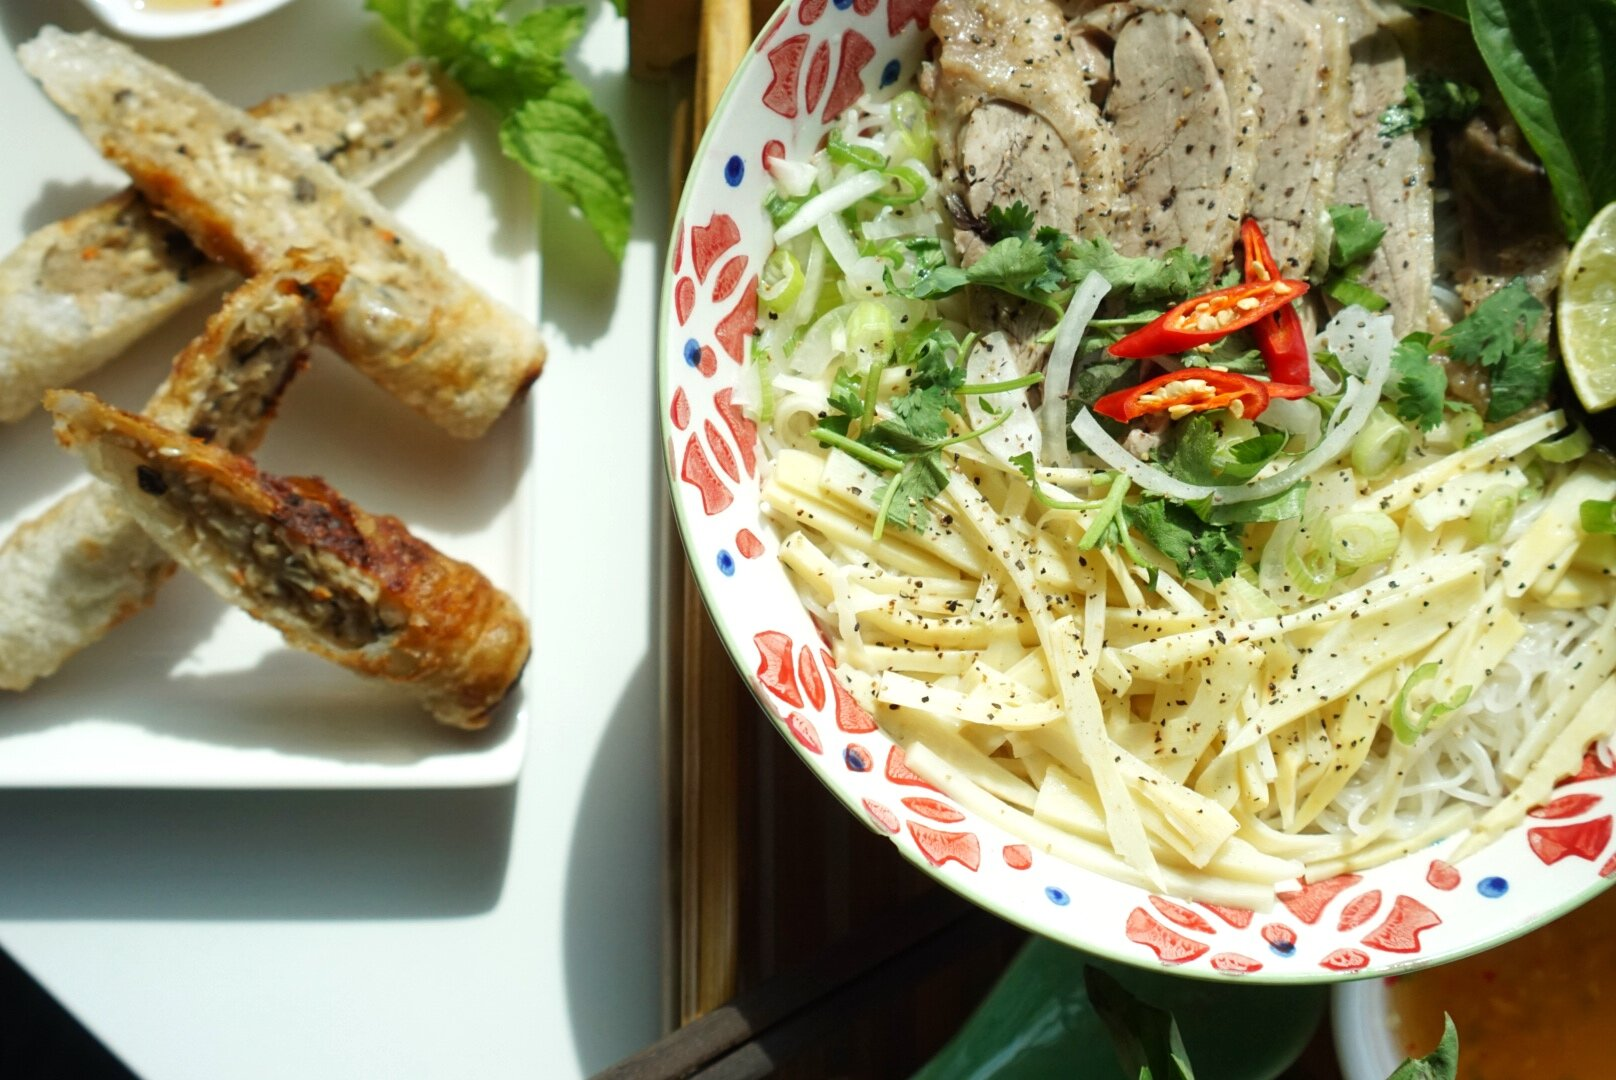 Hearty noodle soups and crispy spring rolls make for a satisfying meal.